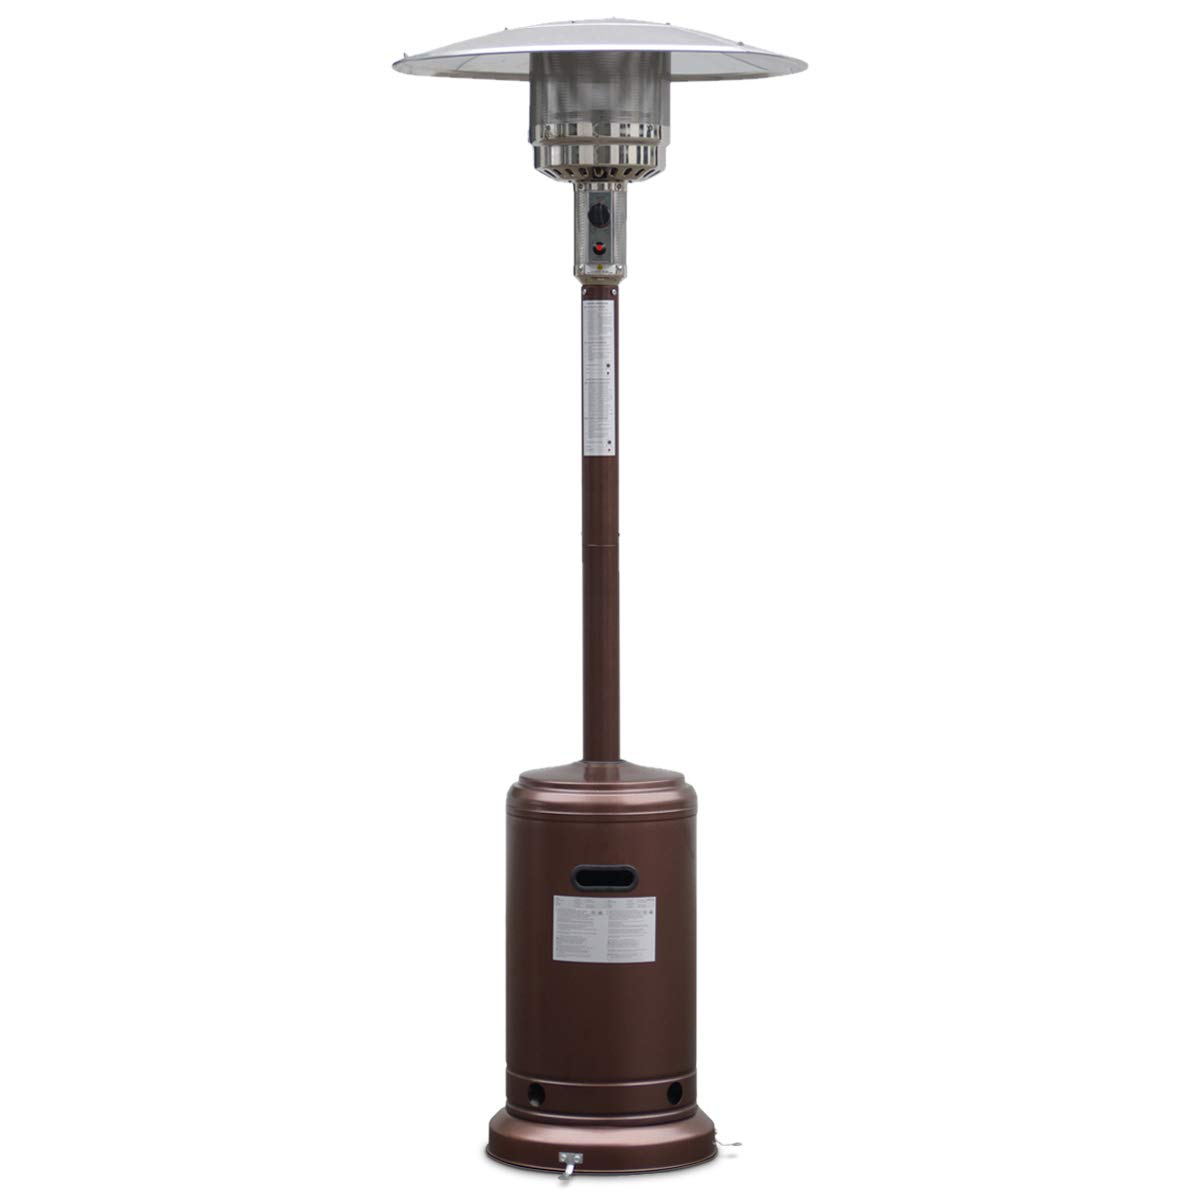 Giantex Steel Outdoor Patio Heater Propane Lp Gas W/Accessories (Bronze) by Giantex